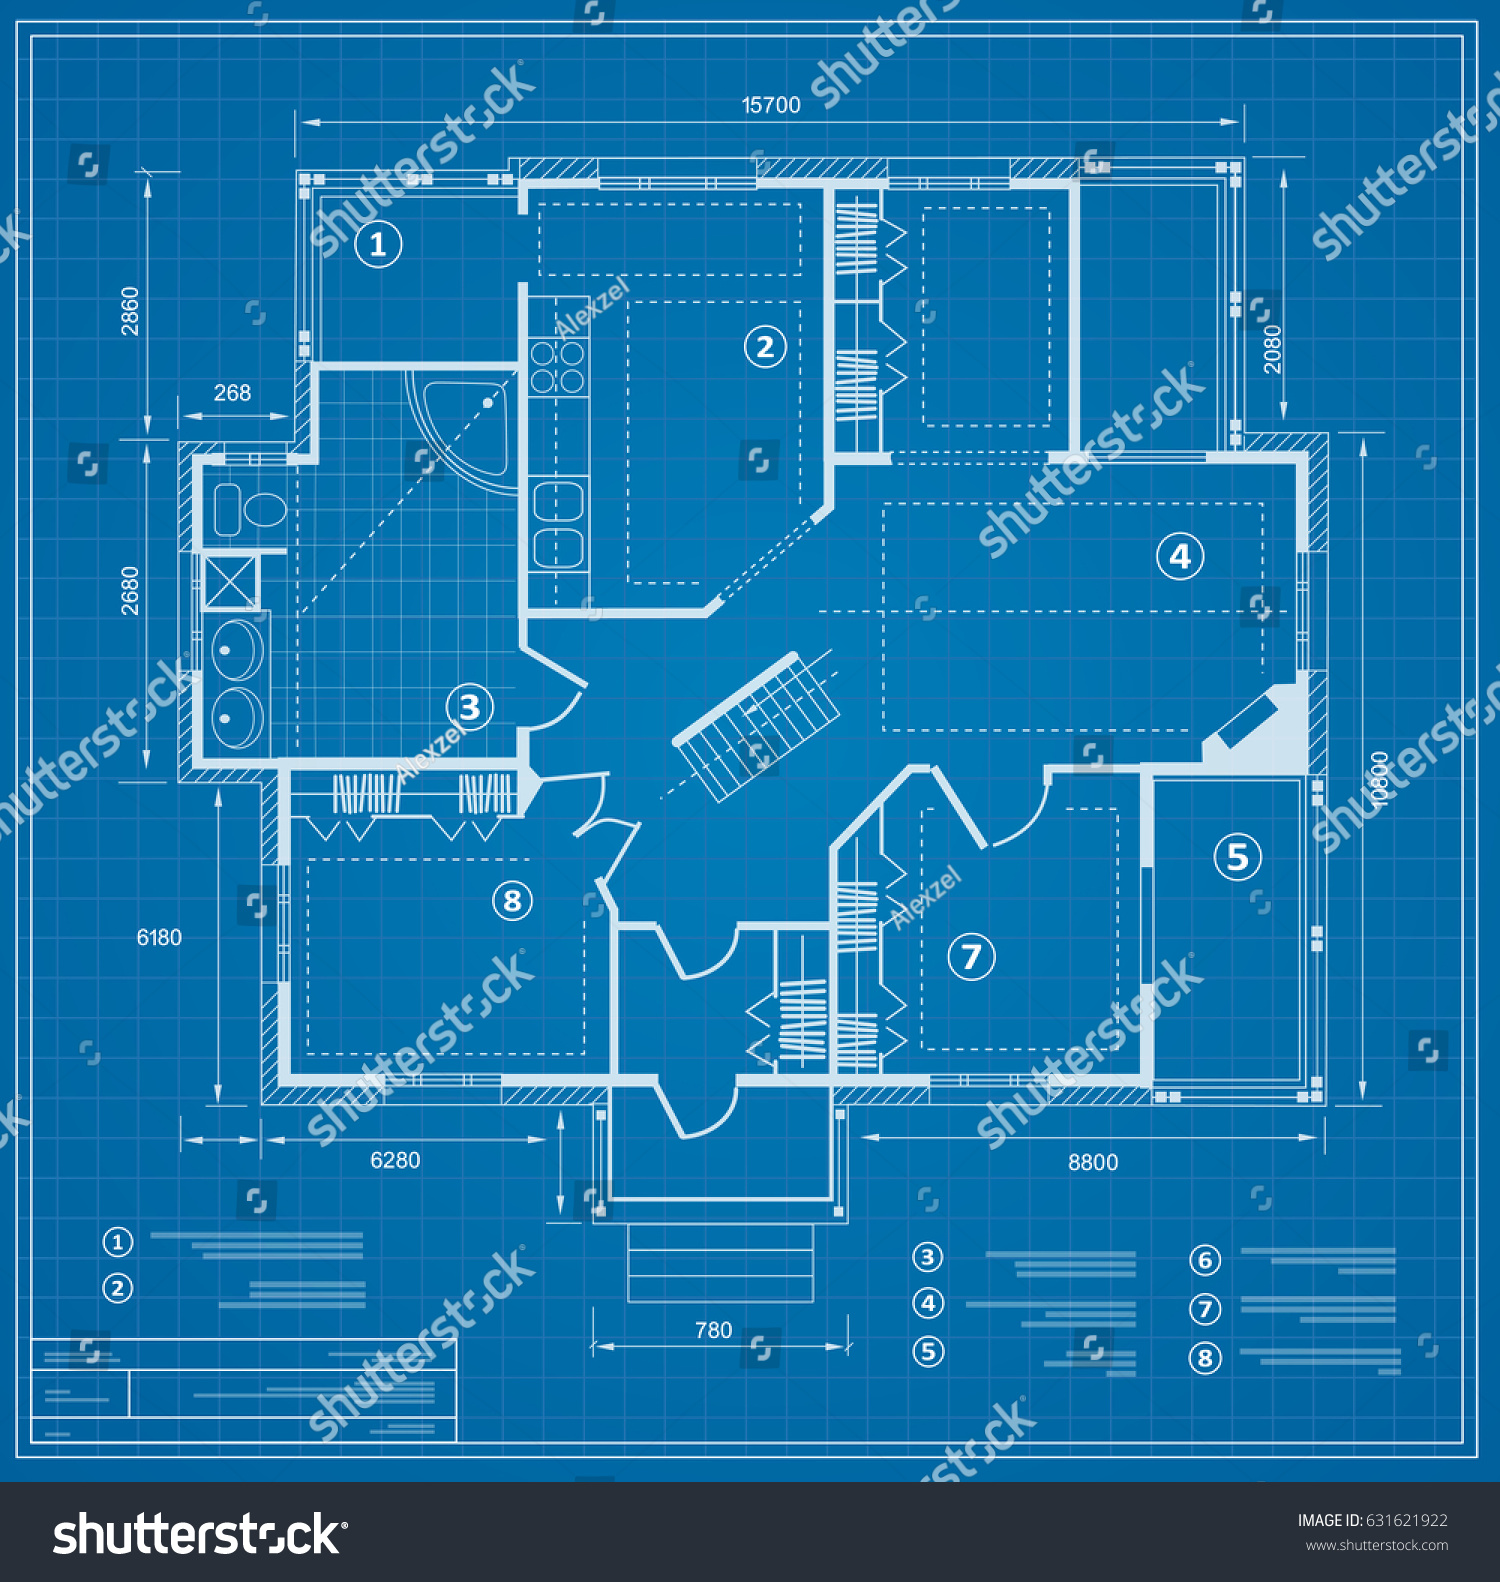 Blueprint house plan drawing figure jotting stock vector 631621922 blueprint house plan drawing figure of the jotting sketch of the construction and the industrial malvernweather Image collections